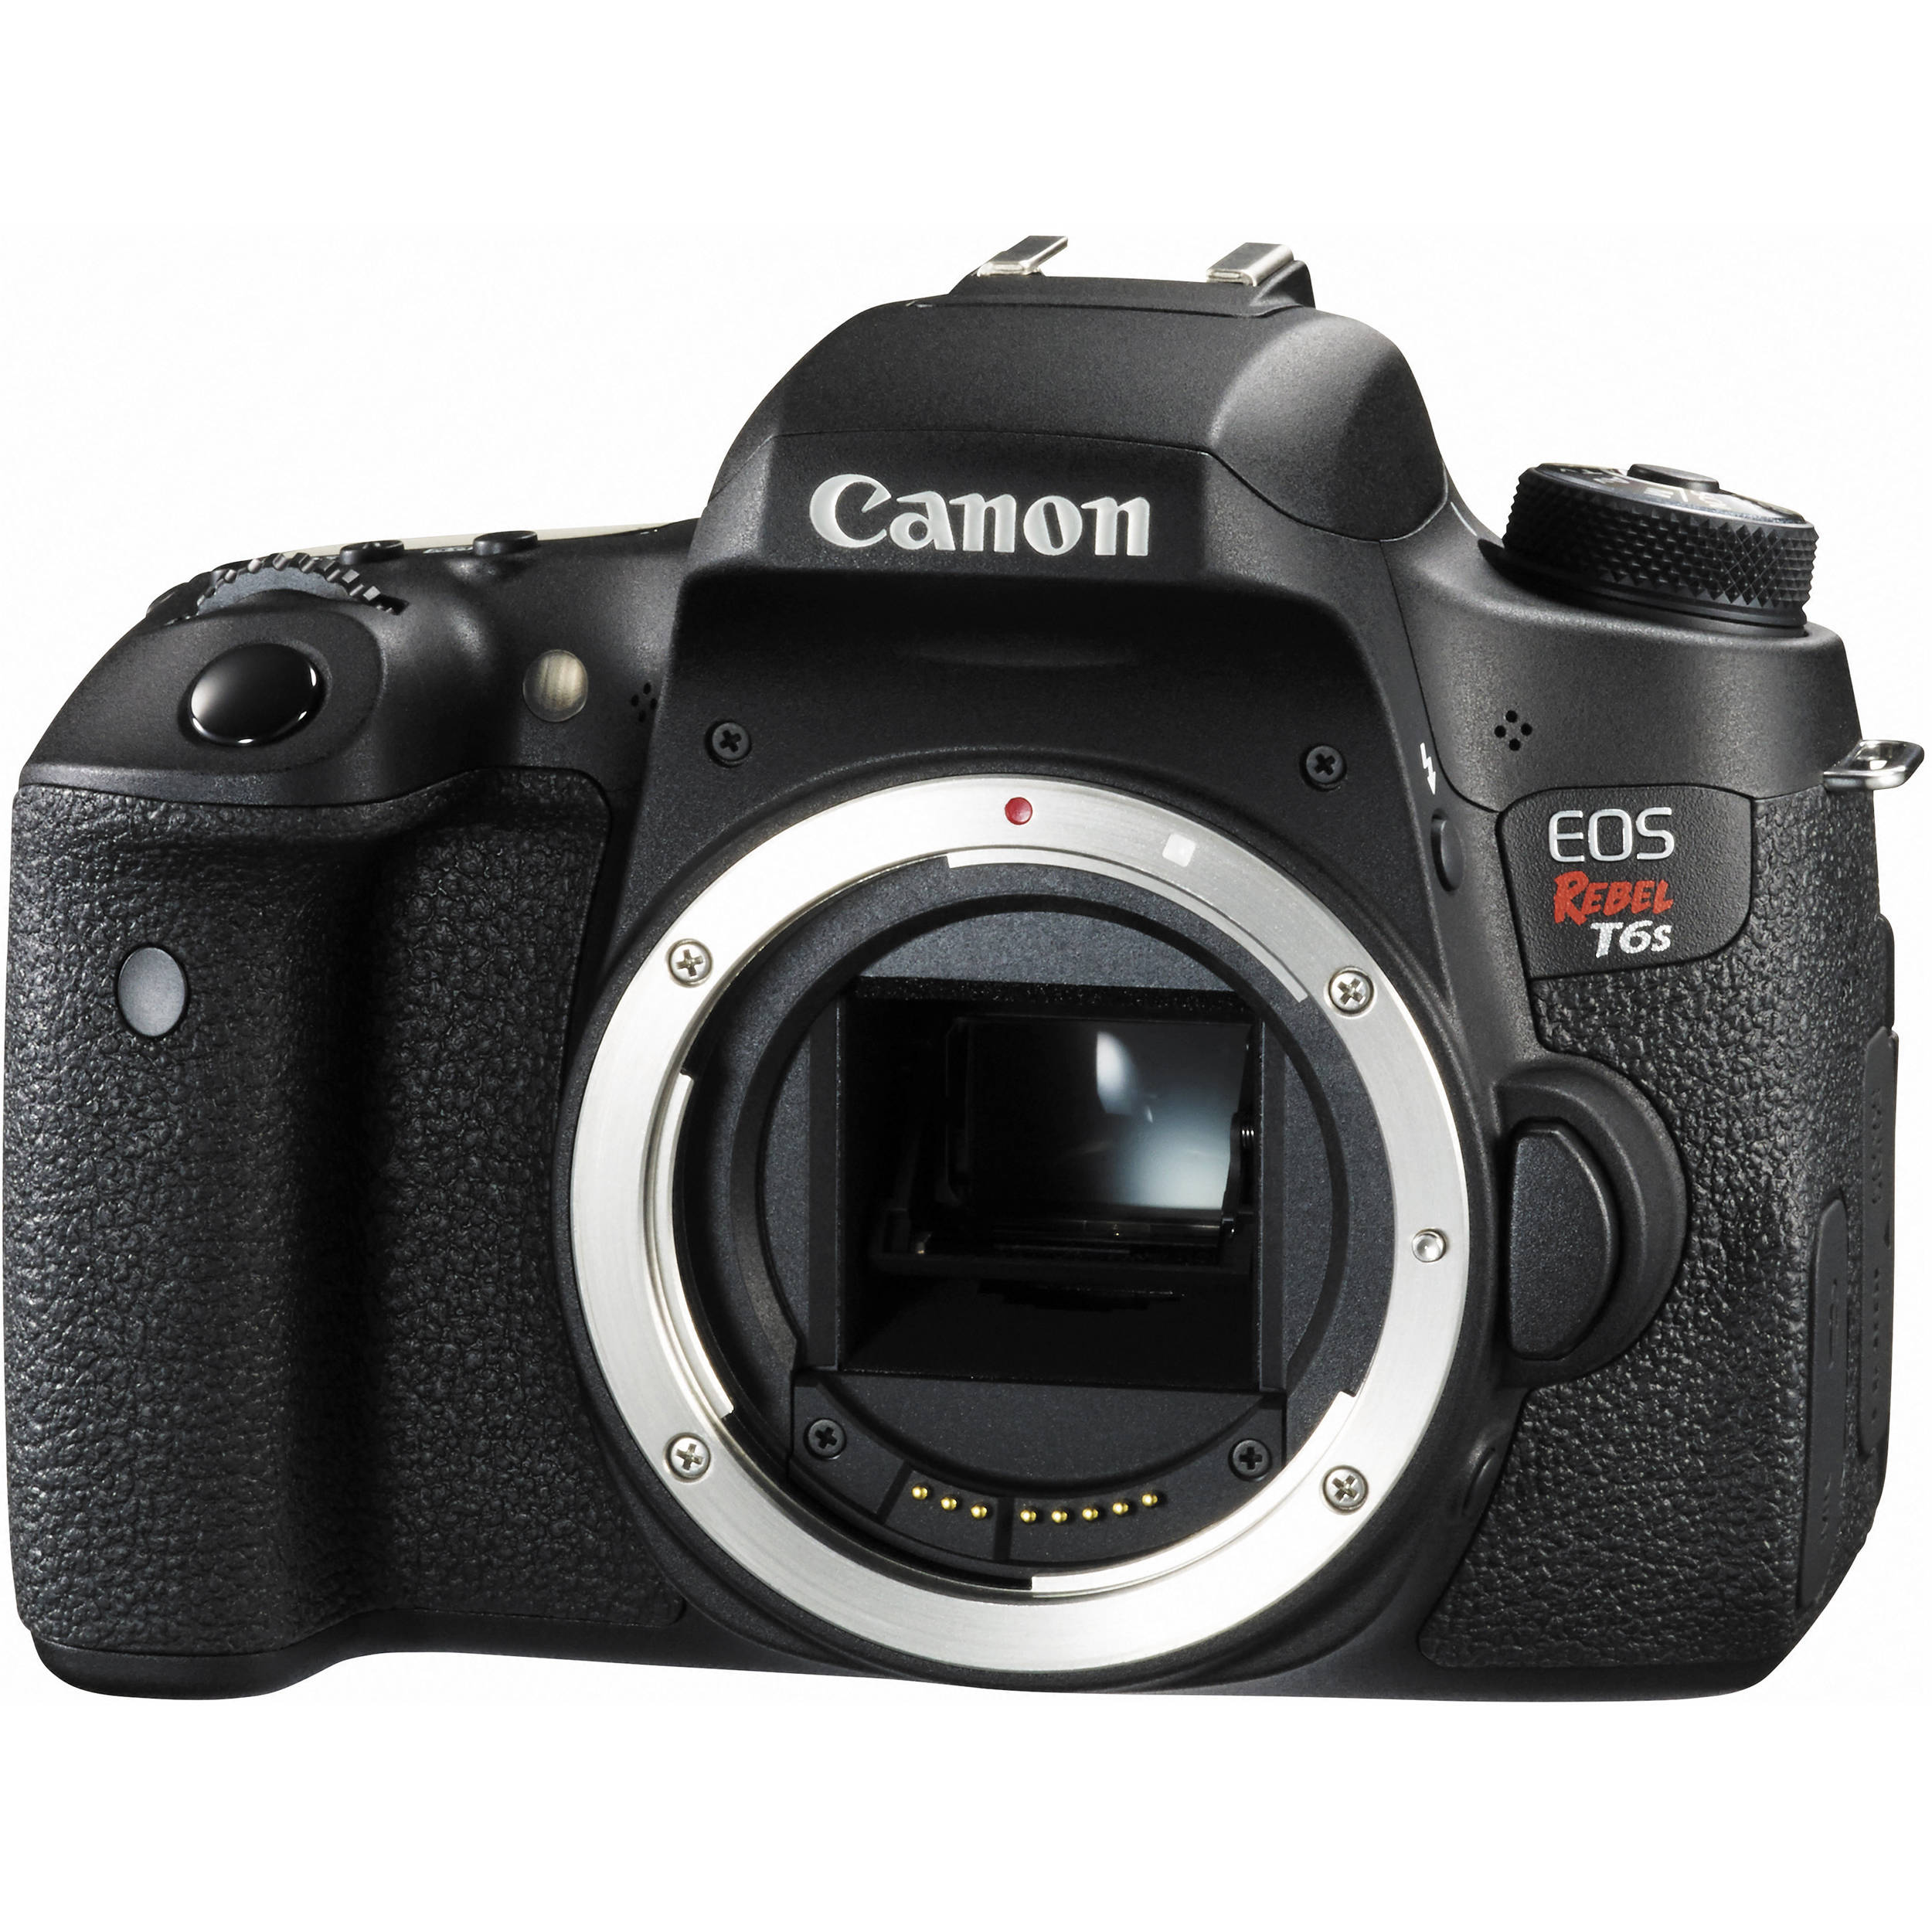 Camera Recommended Dslr Camera For Beginners 9 recommended entry level dslr cameras bh explora canon eos rebel t6s camera